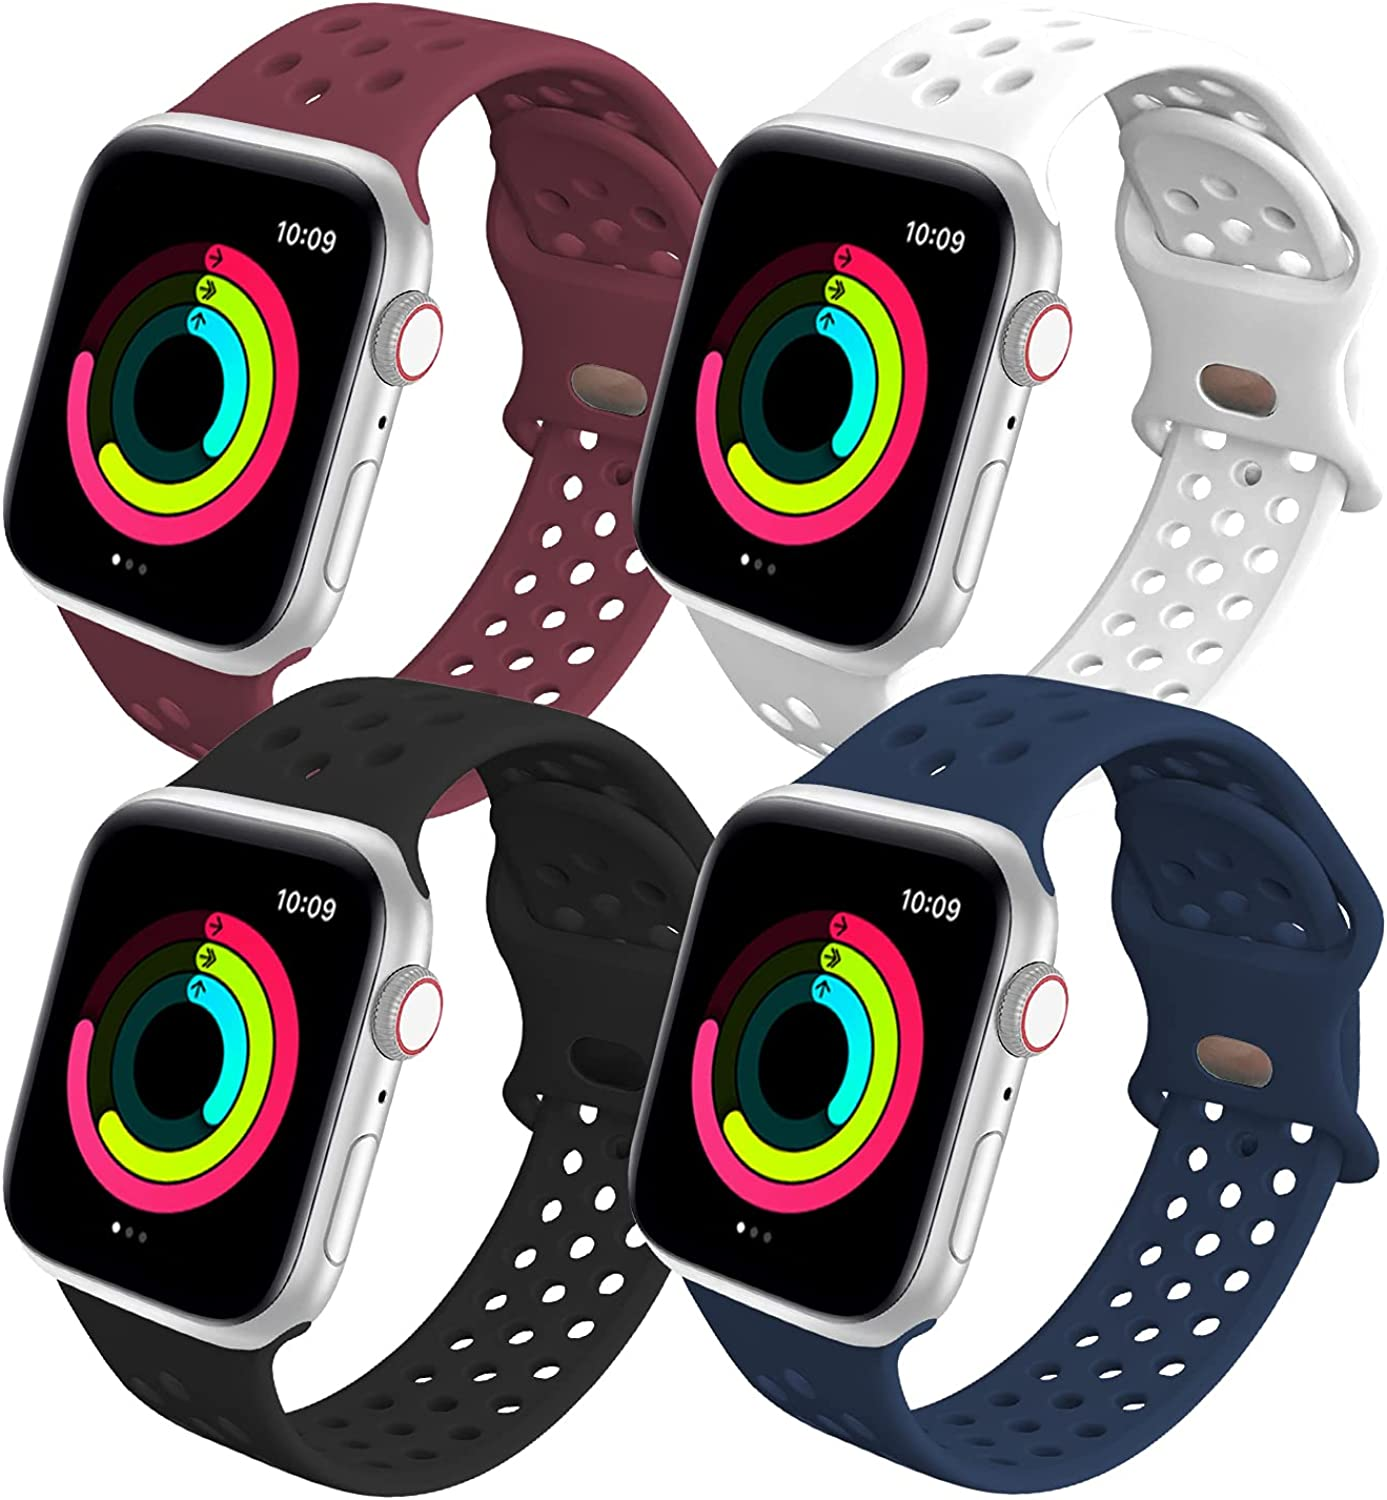 Cindgress Sport Band Compatible with Apple Watch Bands 38mm 40mm 42mm 44mm for Women Men,Breathable Stylish SoftSilicone Strap Compatible for iWatch Wristband Series 6 3 SE 5 4 2 1,4 Pack